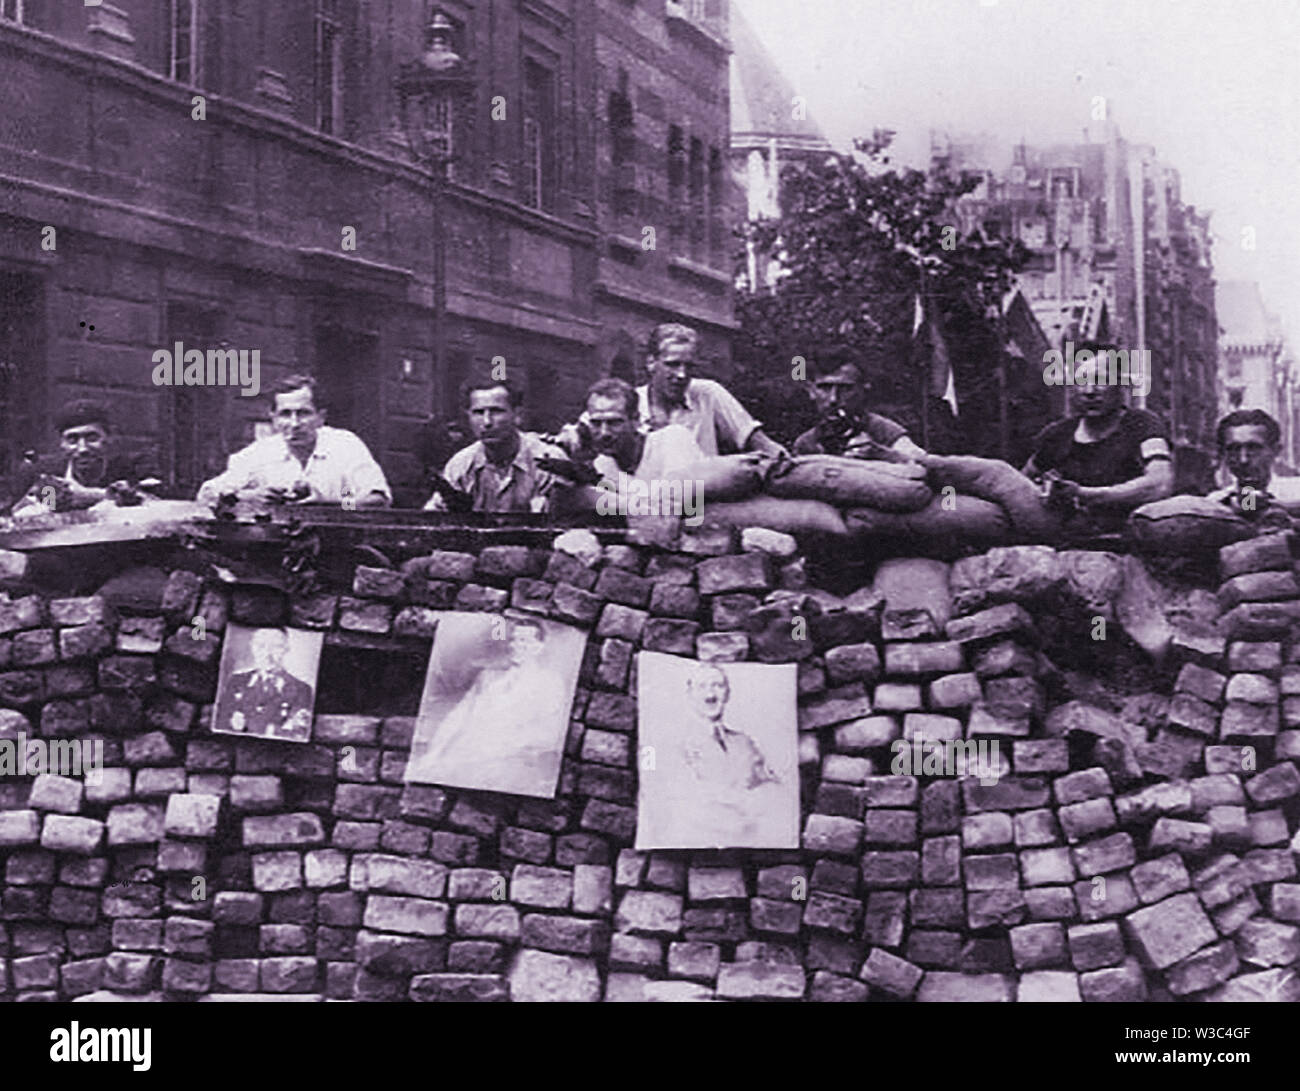 WWII printed old photograph of members of the  French resistance movement manning a barricade in Paris. - Stock Image